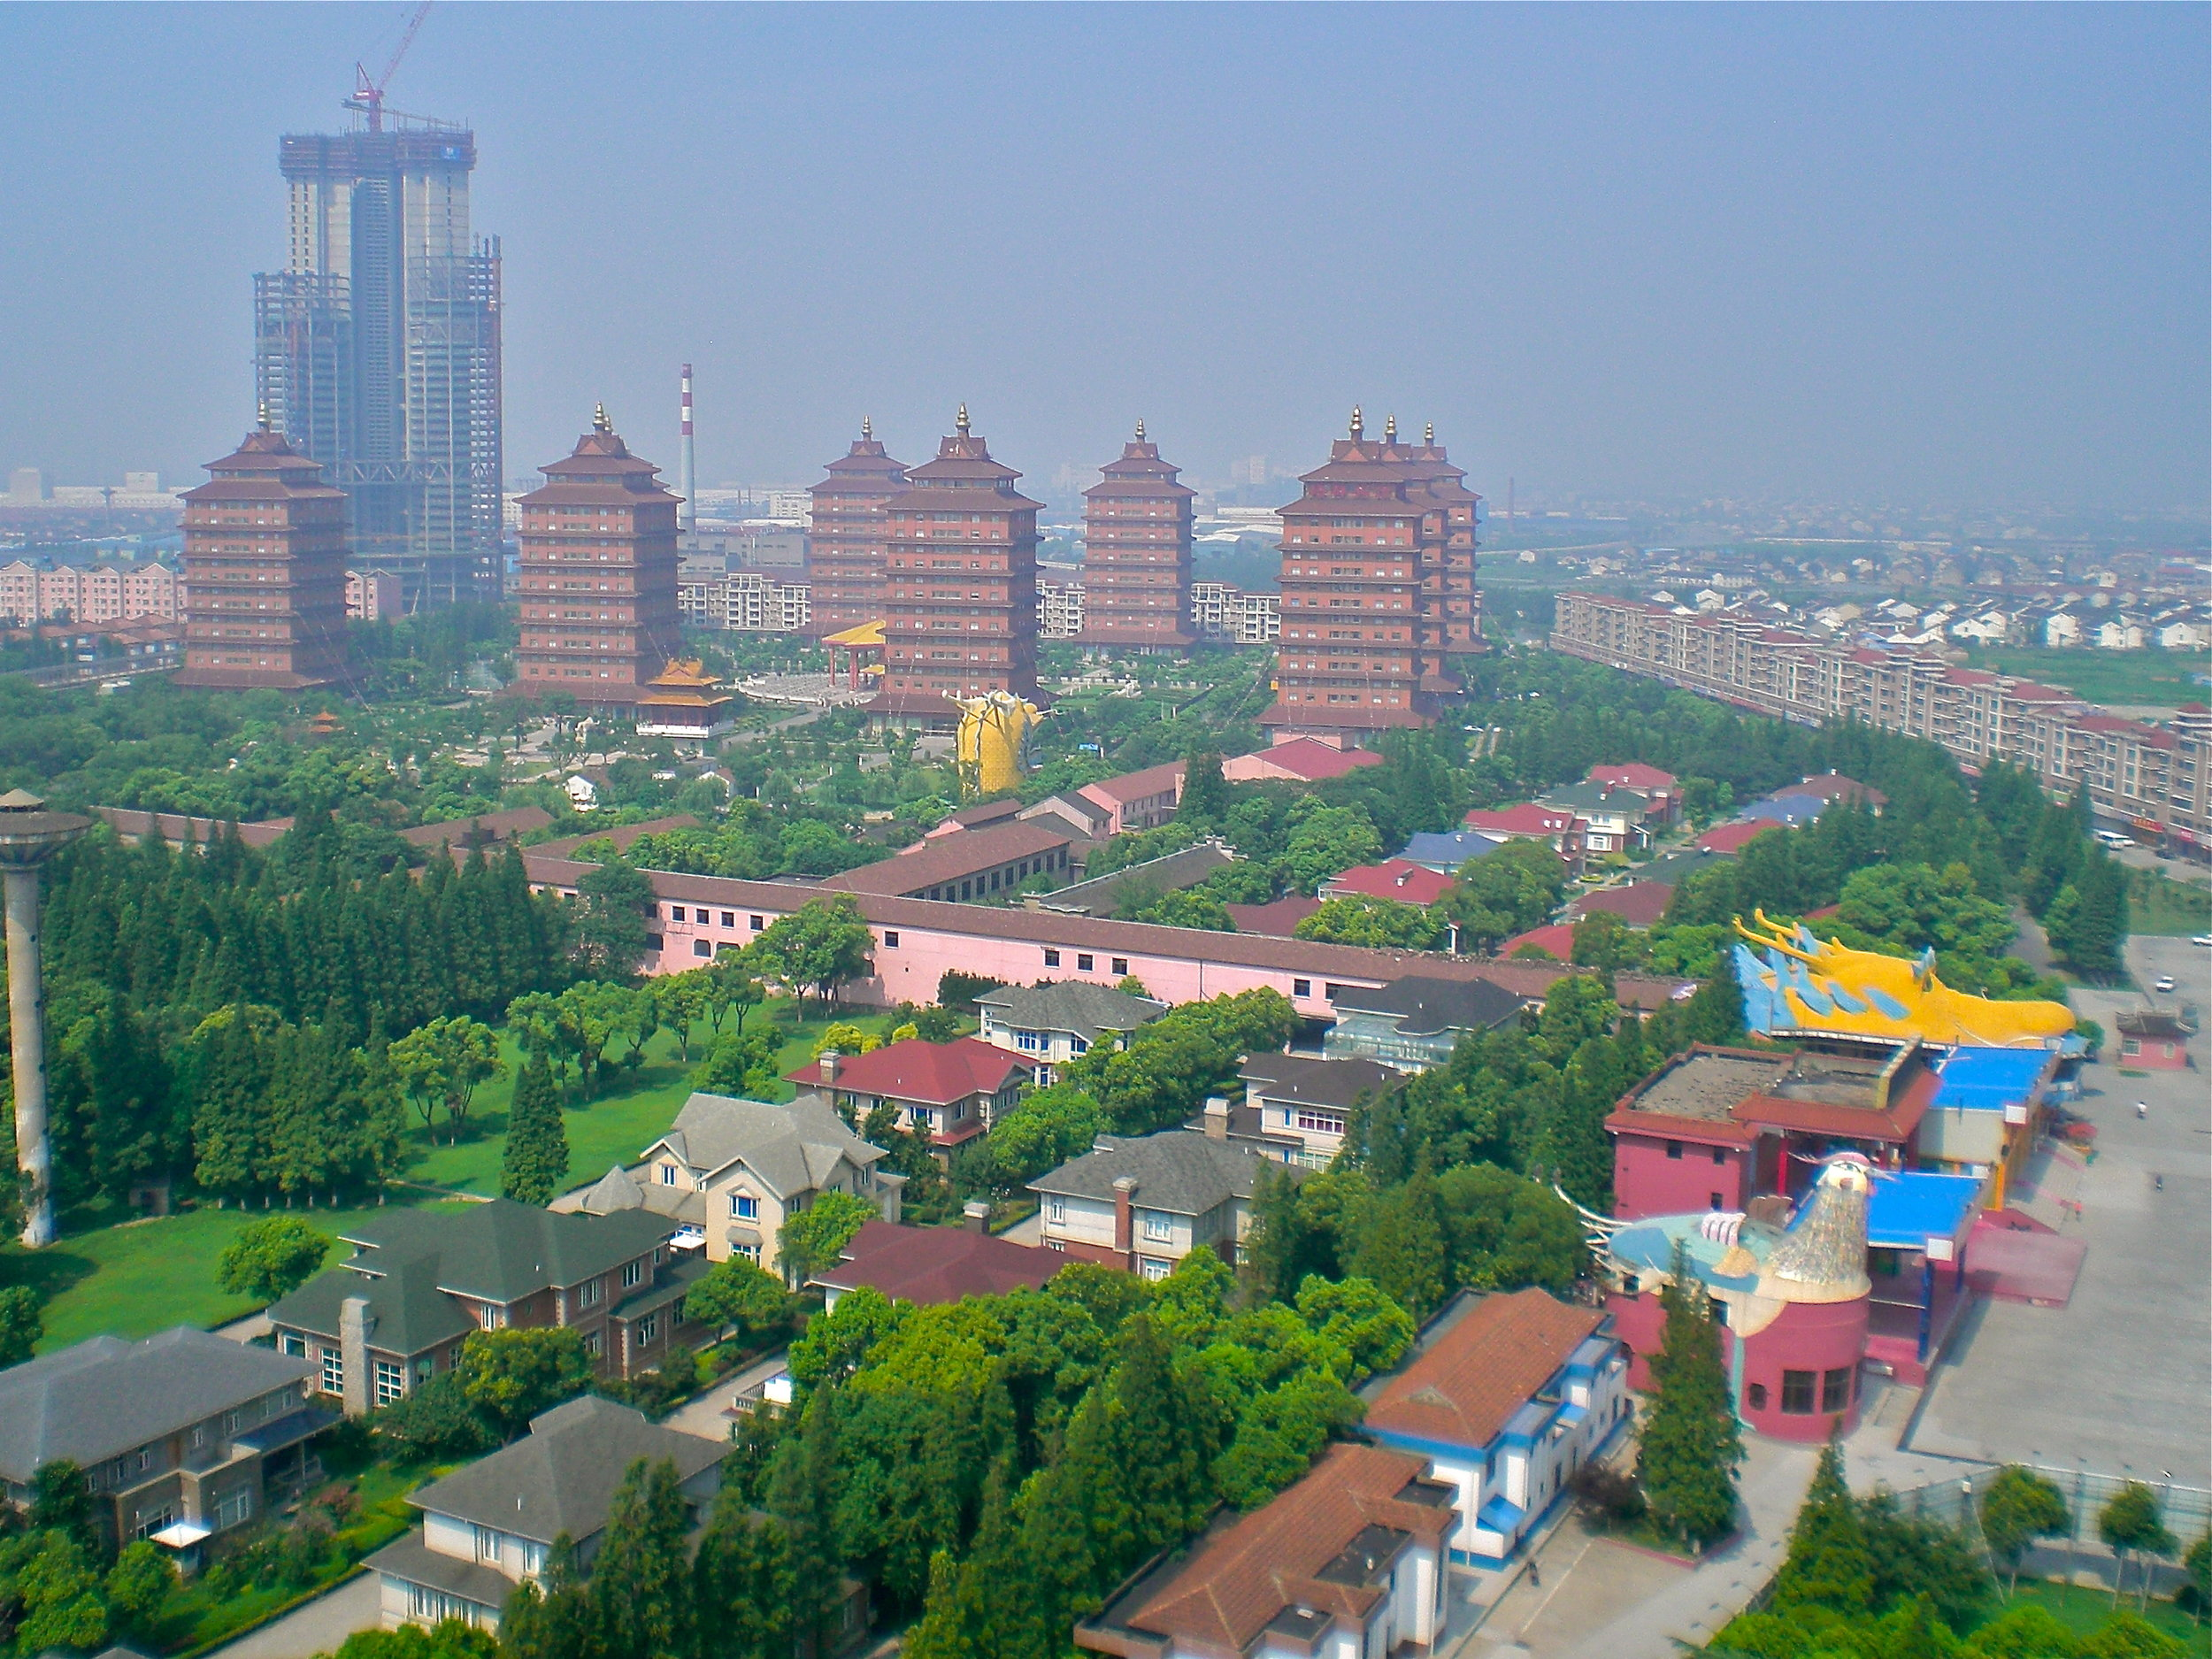 Huaxi, known as the richest town in China. (C) Remko Tanis